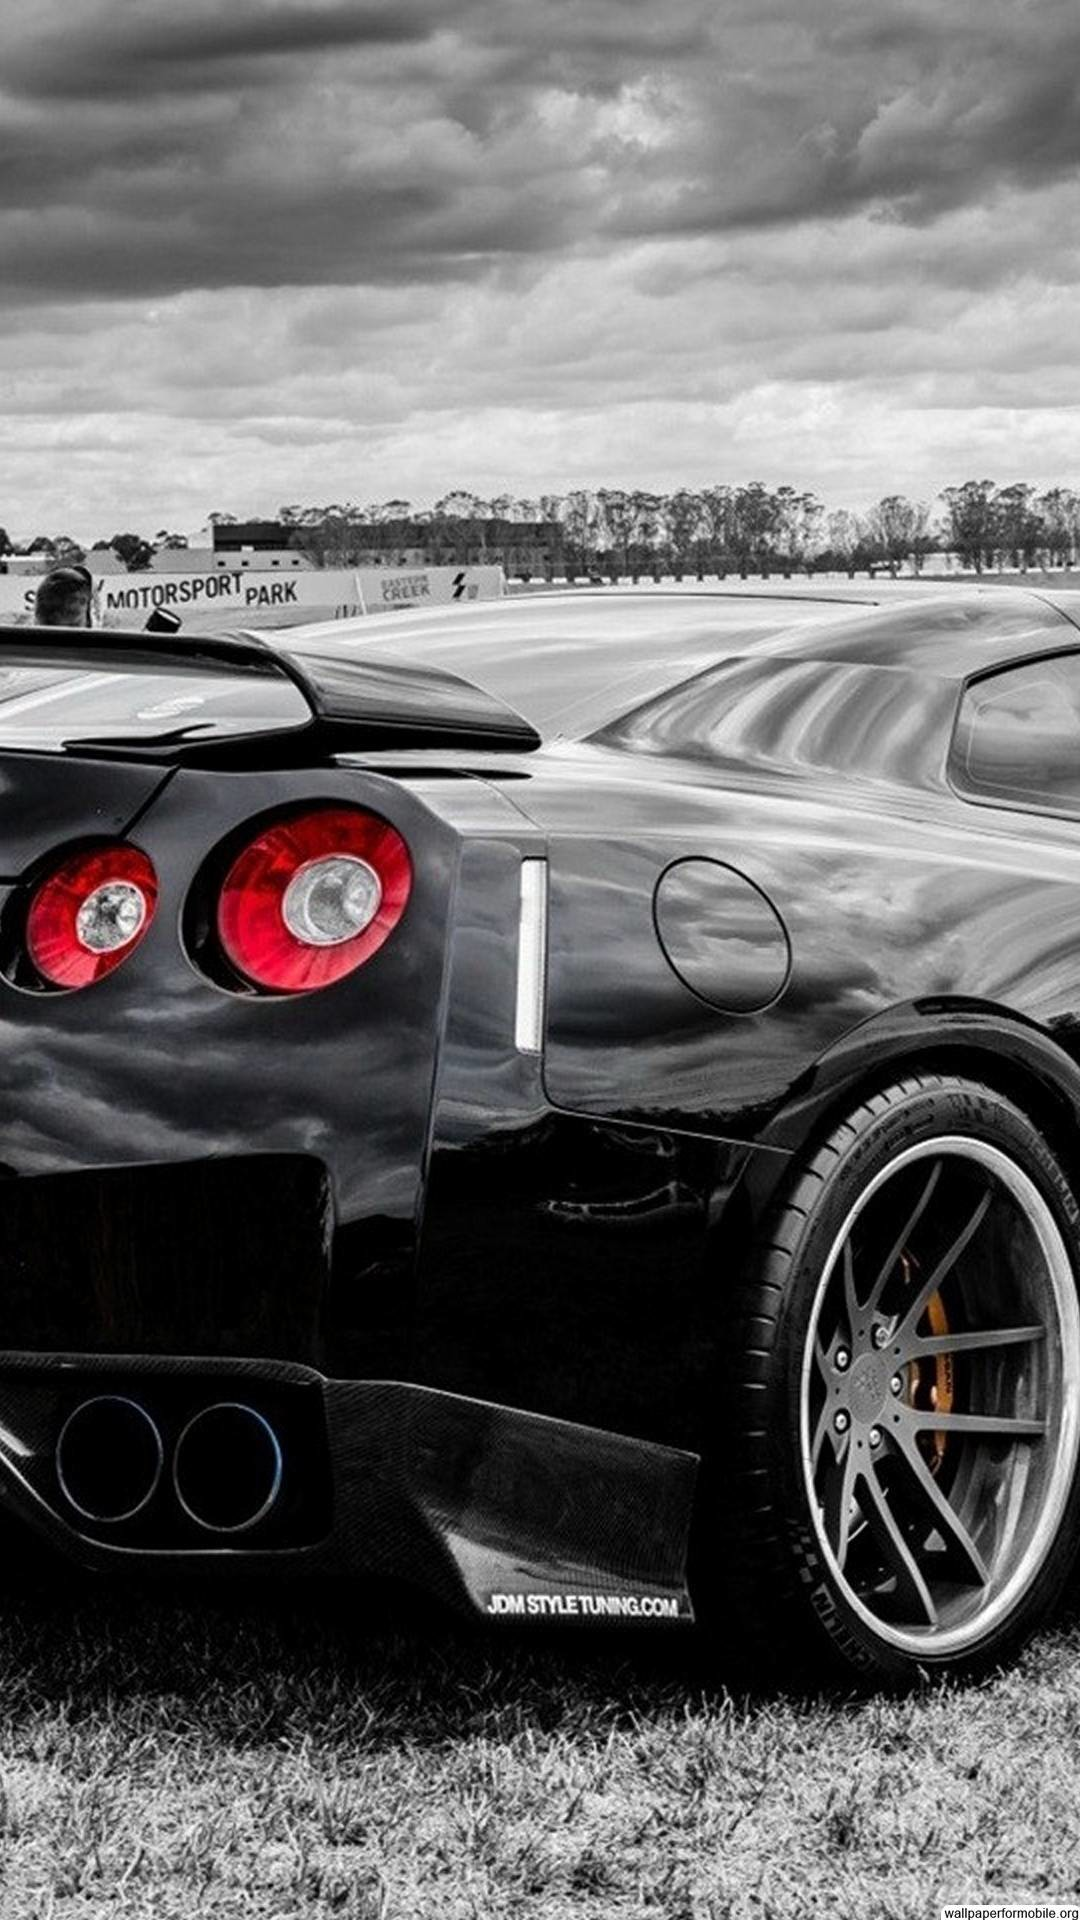 Gtr Iphone Wallpaper 73 Images